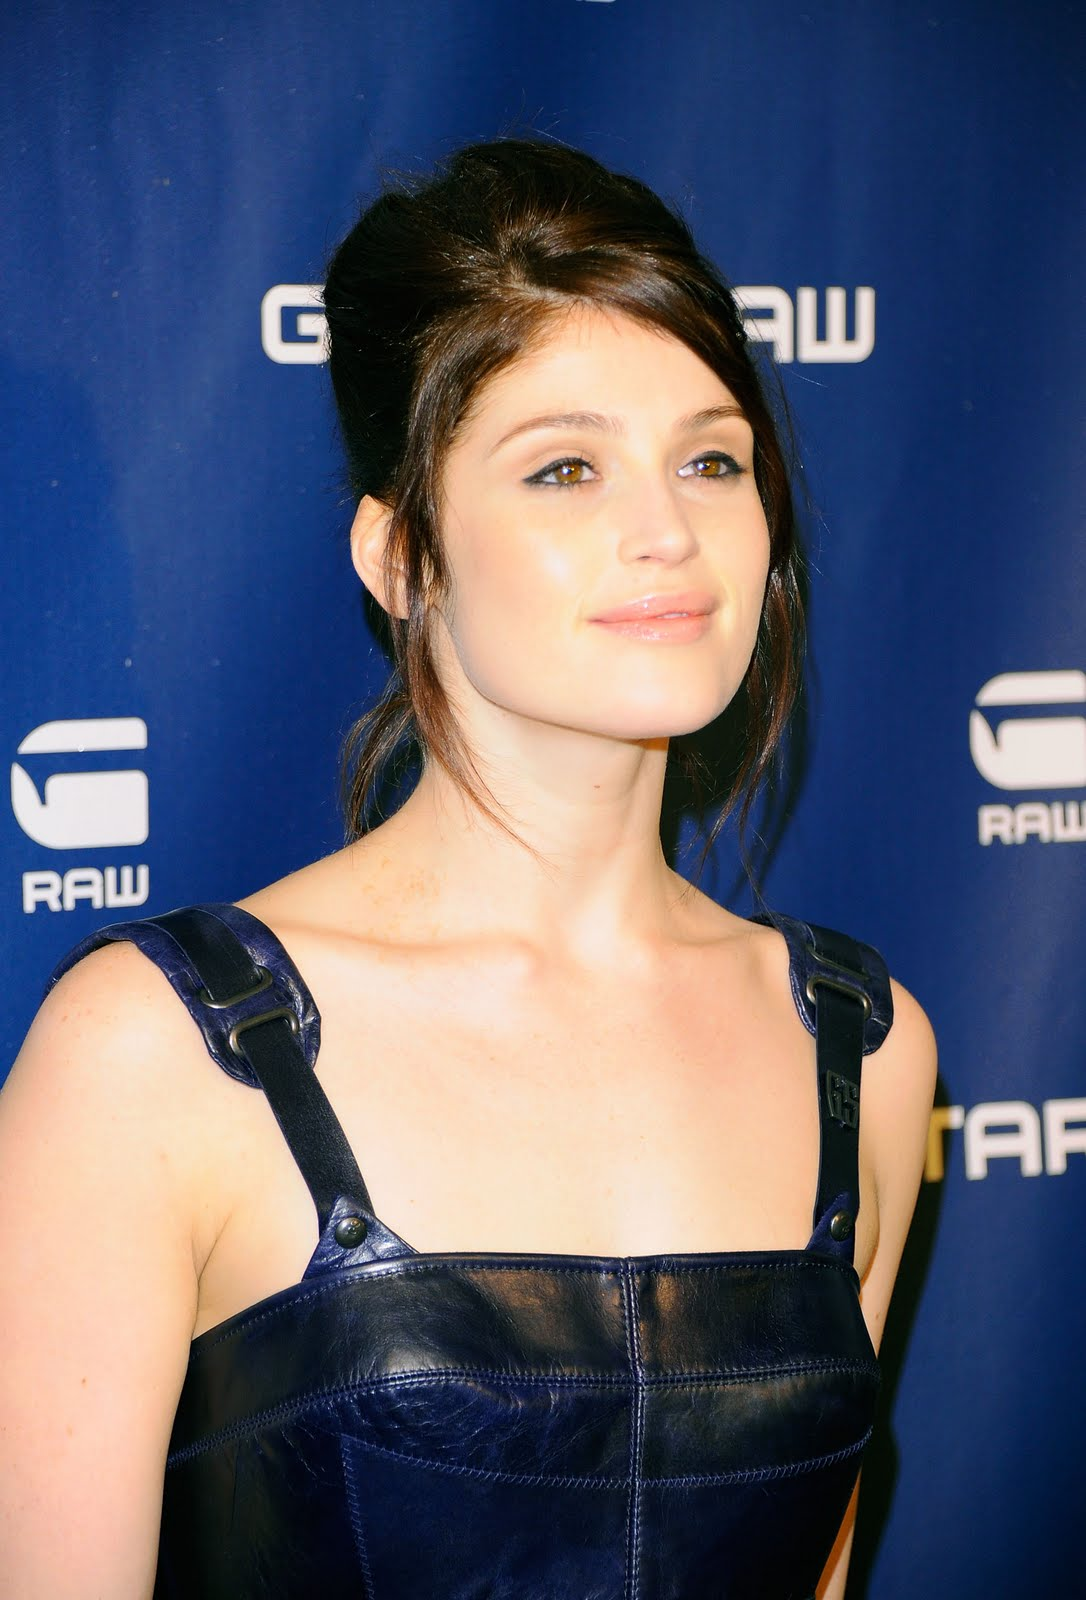 http://4.bp.blogspot.com/-BlWW3l_Rg9U/TVvDA-VrkJI/AAAAAAAAFZg/kSs84uFGlOM/s1600/celebskin_gemma_arterton_backless_leather_minidress_knee_boots_5.jpg